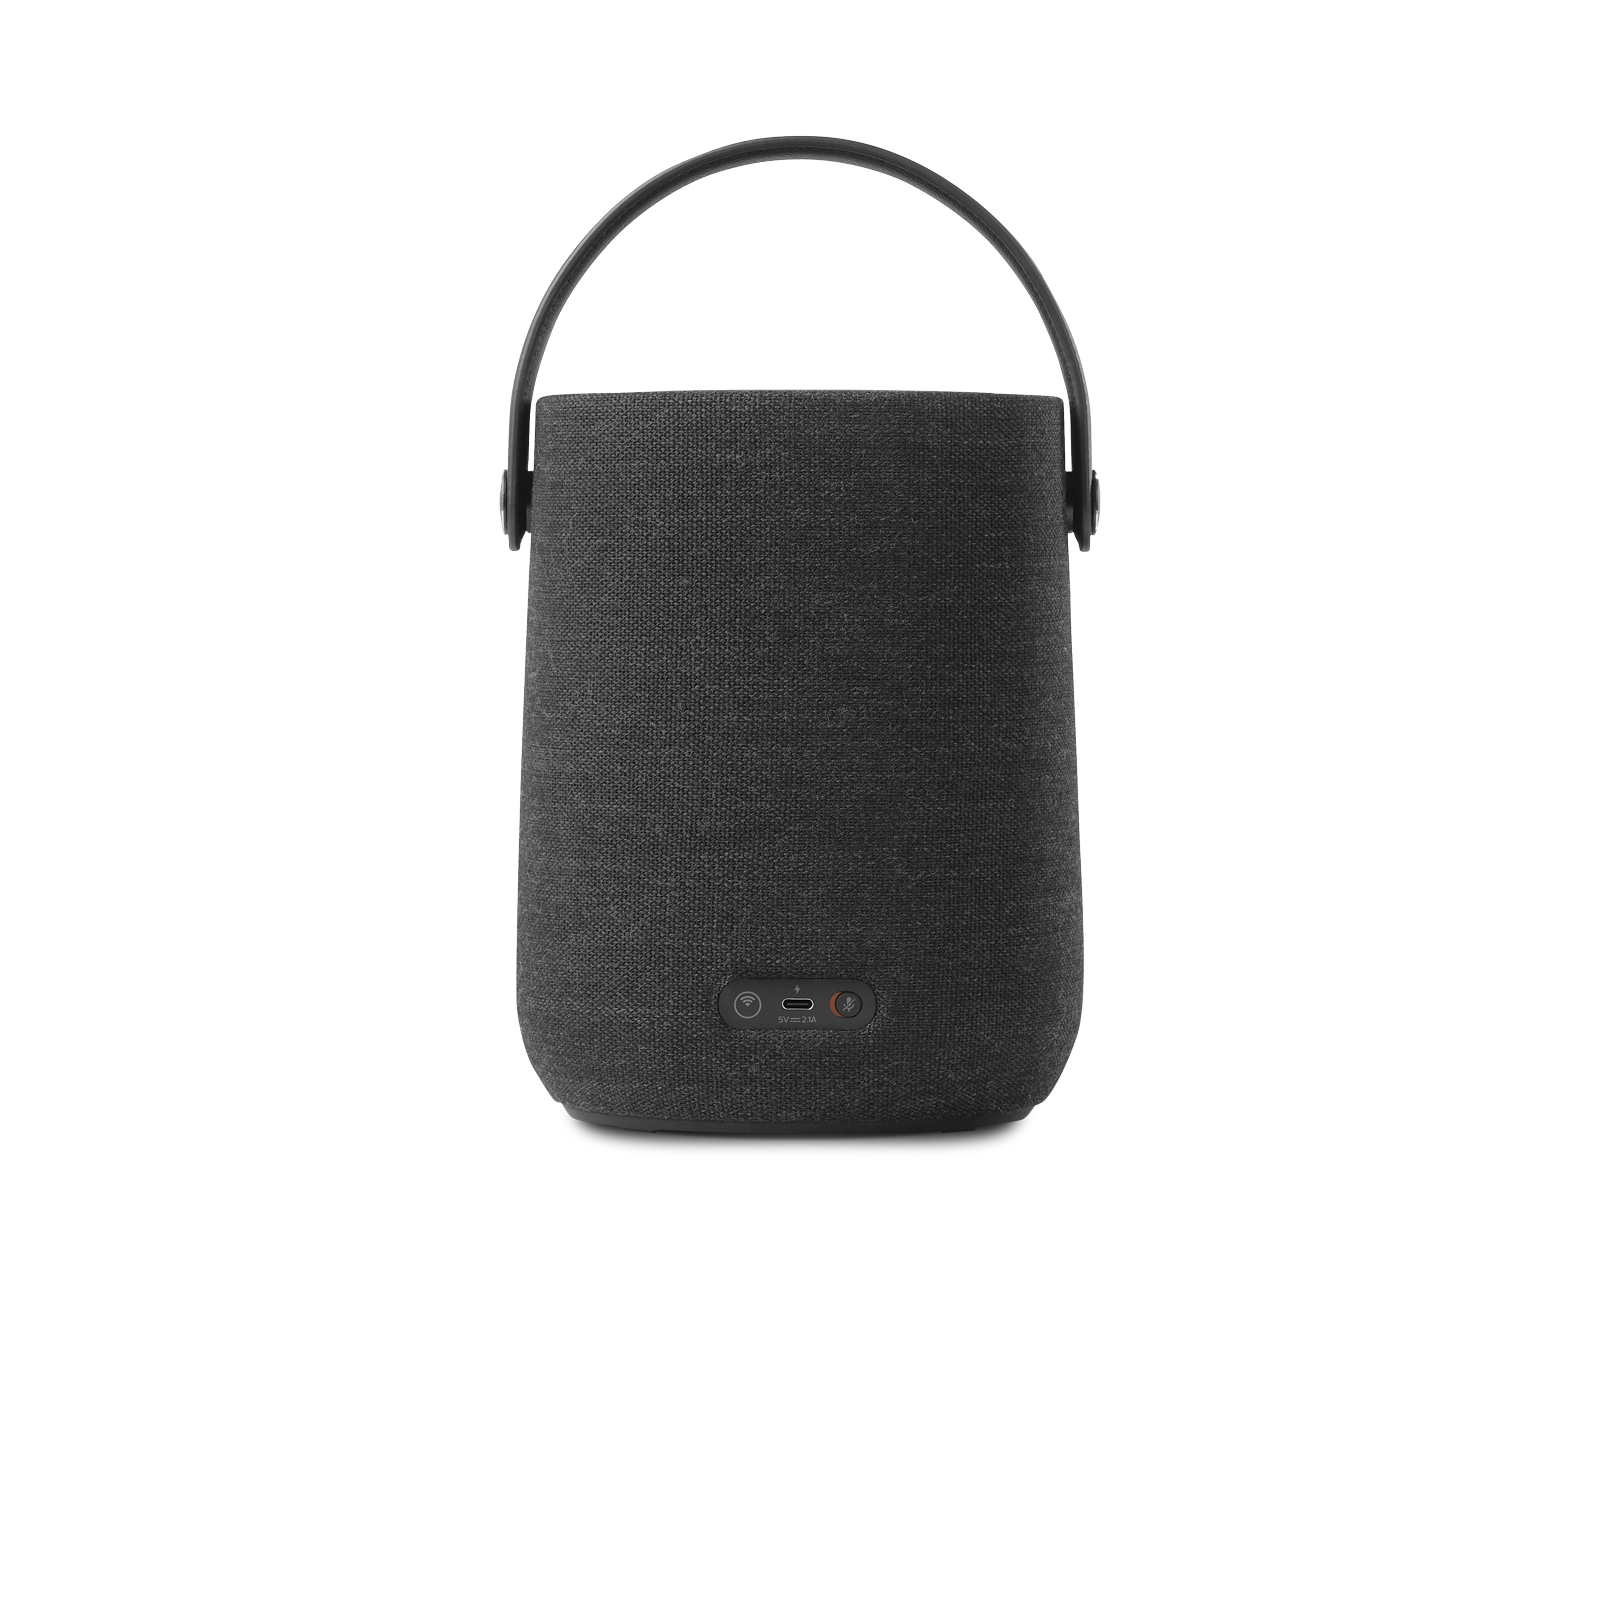 Harman Kardon Citation 200 - Black - Portable smart speaker for HD sound - Back